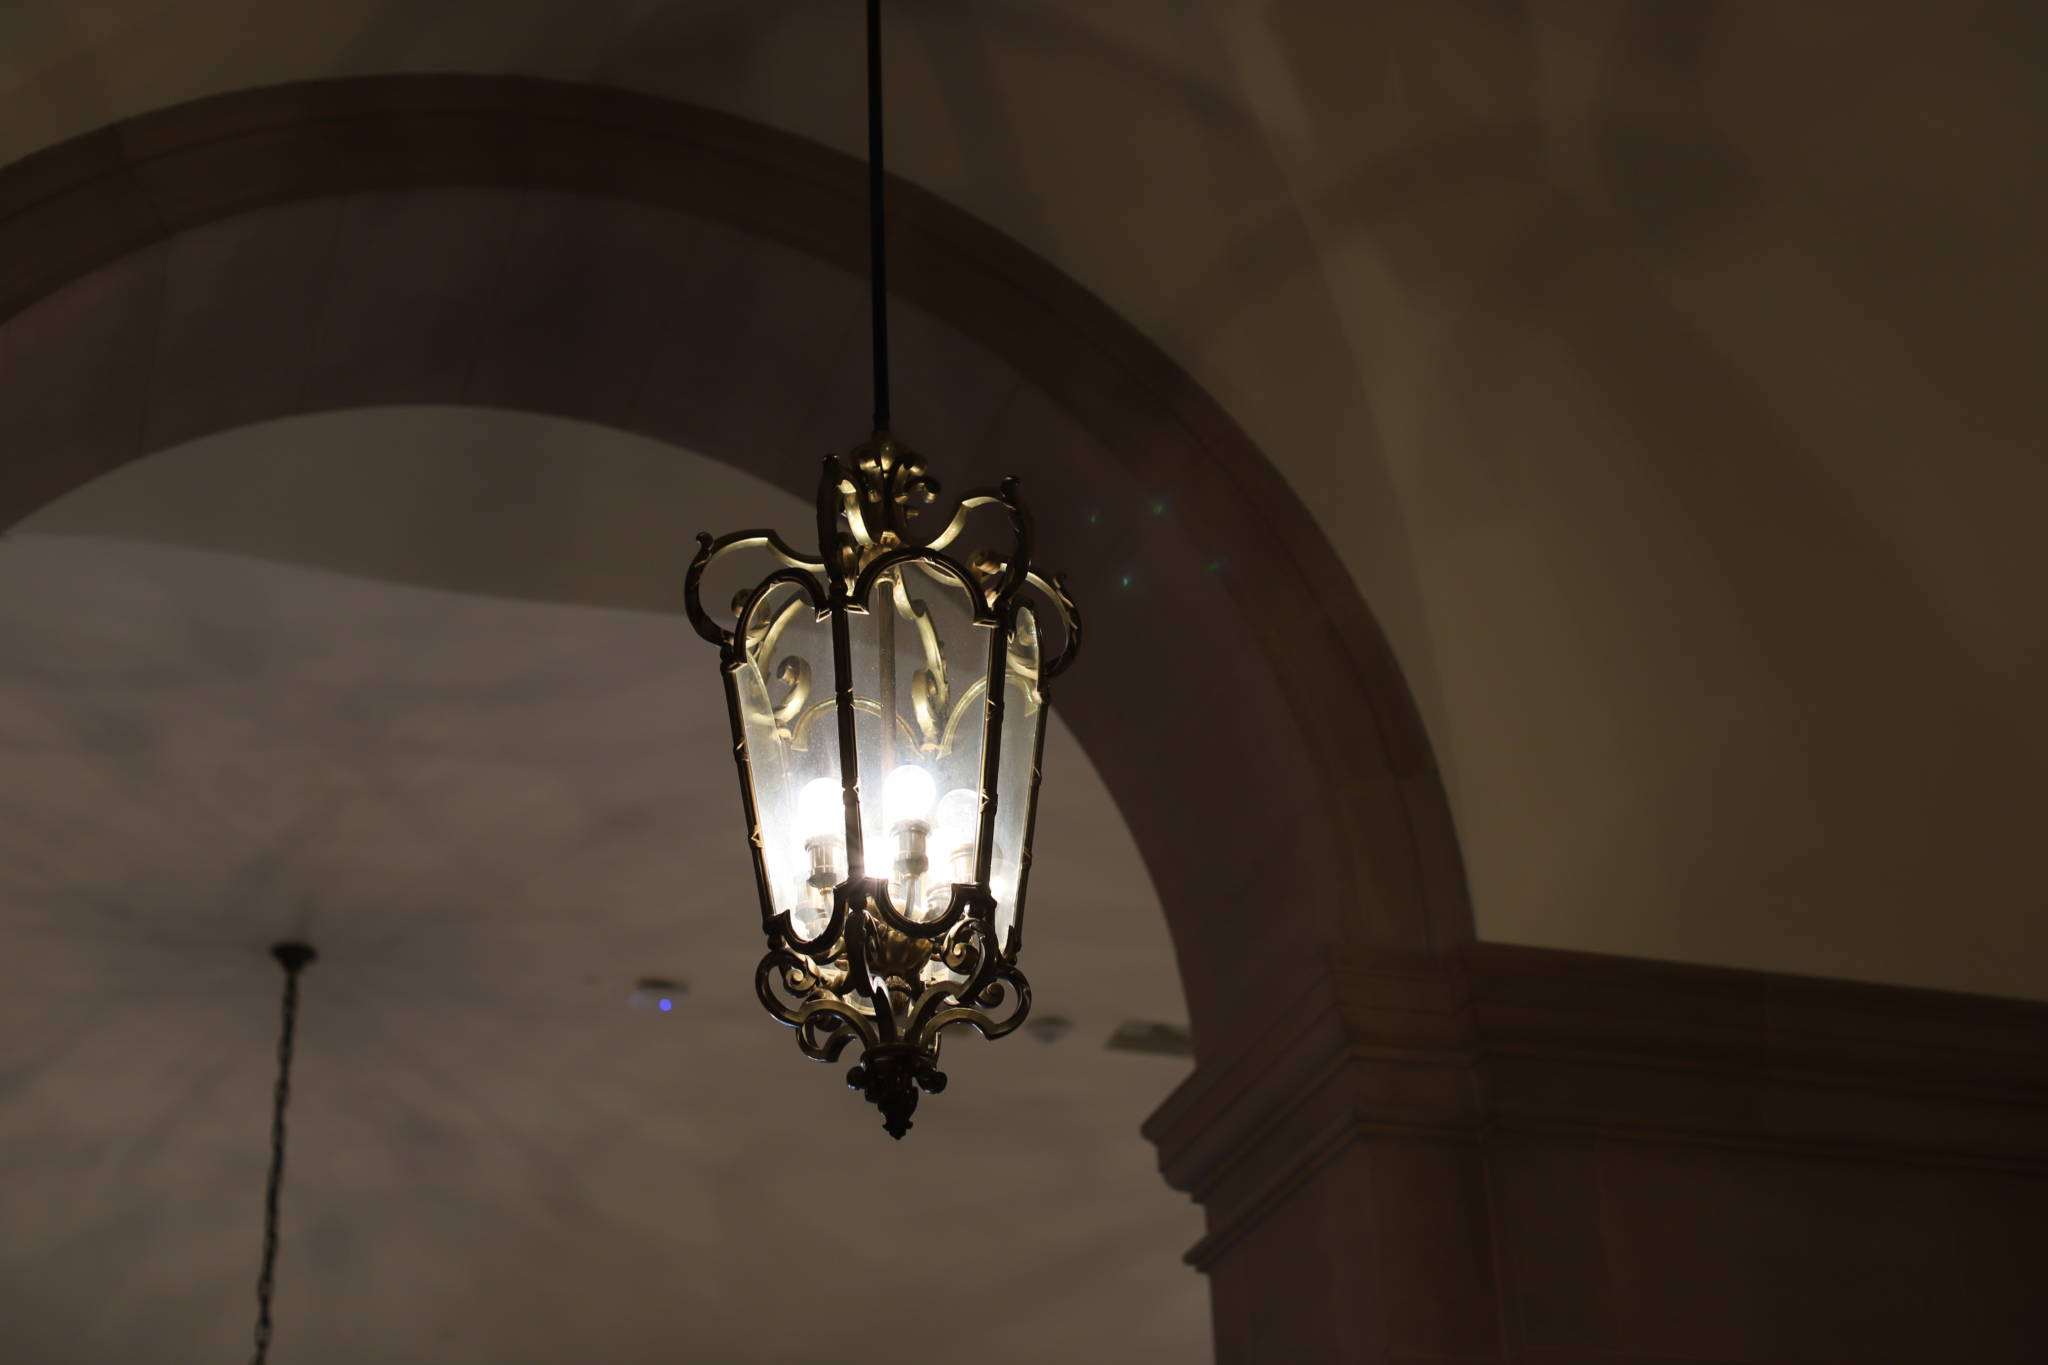 One of the hanging light fixtures in the Veterans Building lobby.